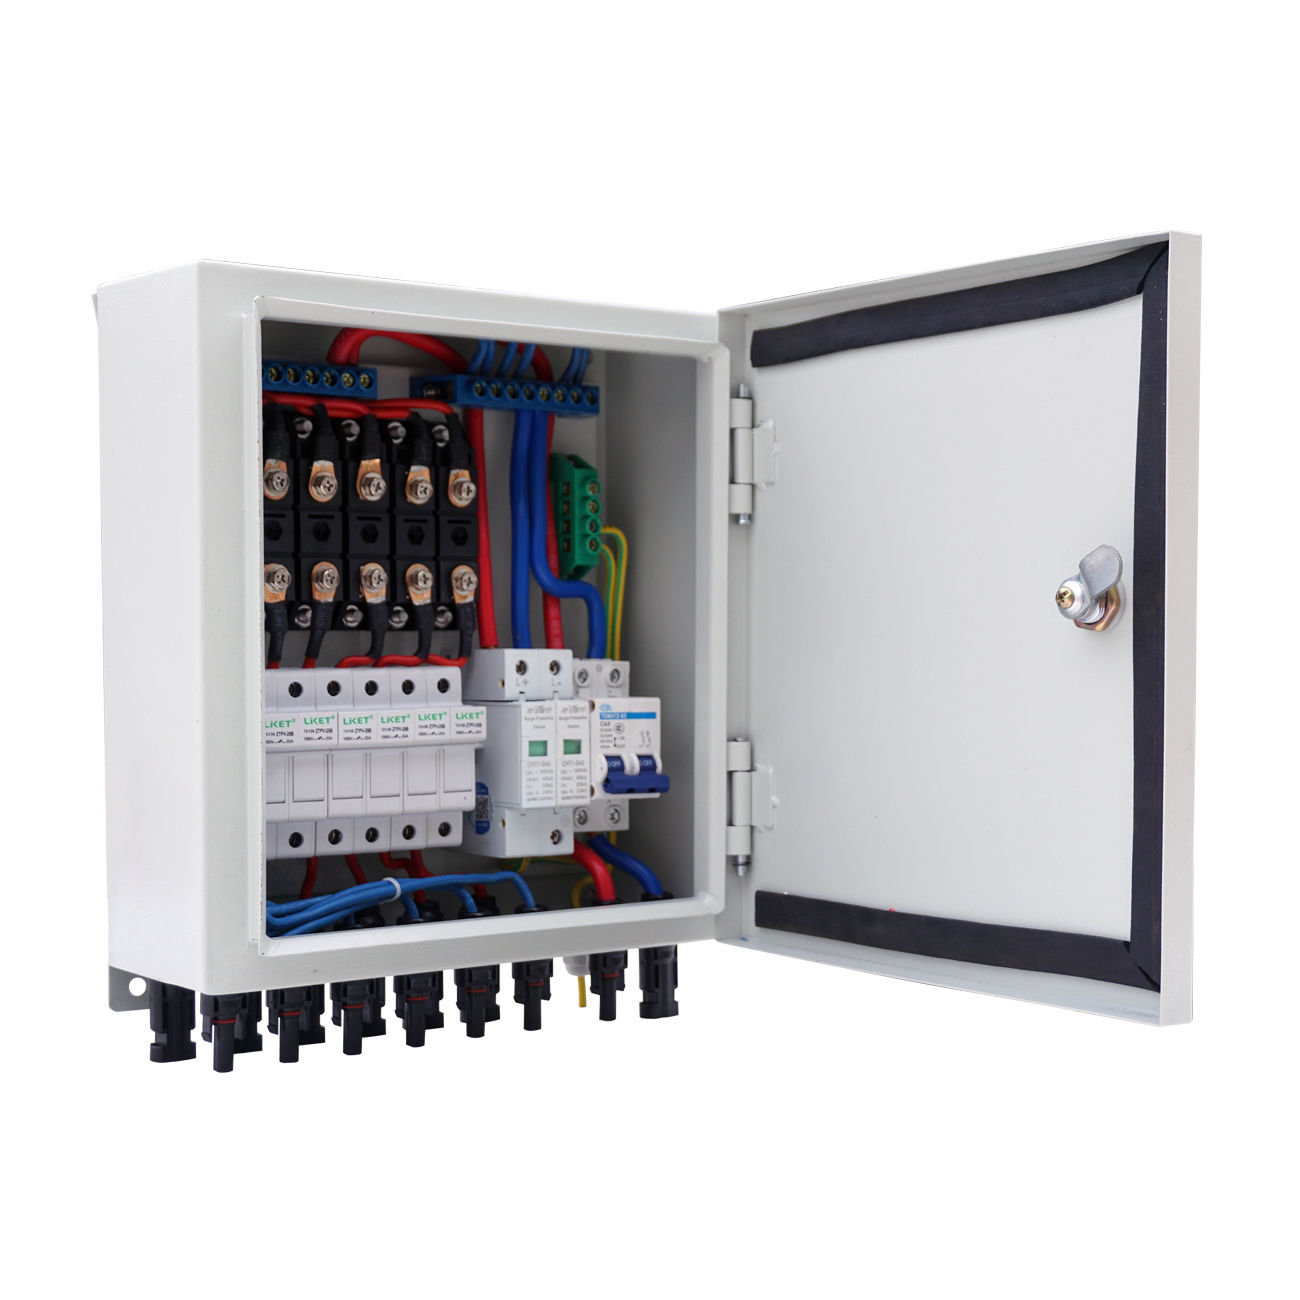 6 String Solar Pv Combiner Box W Circuit Breakers Surge Lightning Tips When Adding Breaker For Diy Your Home Protection